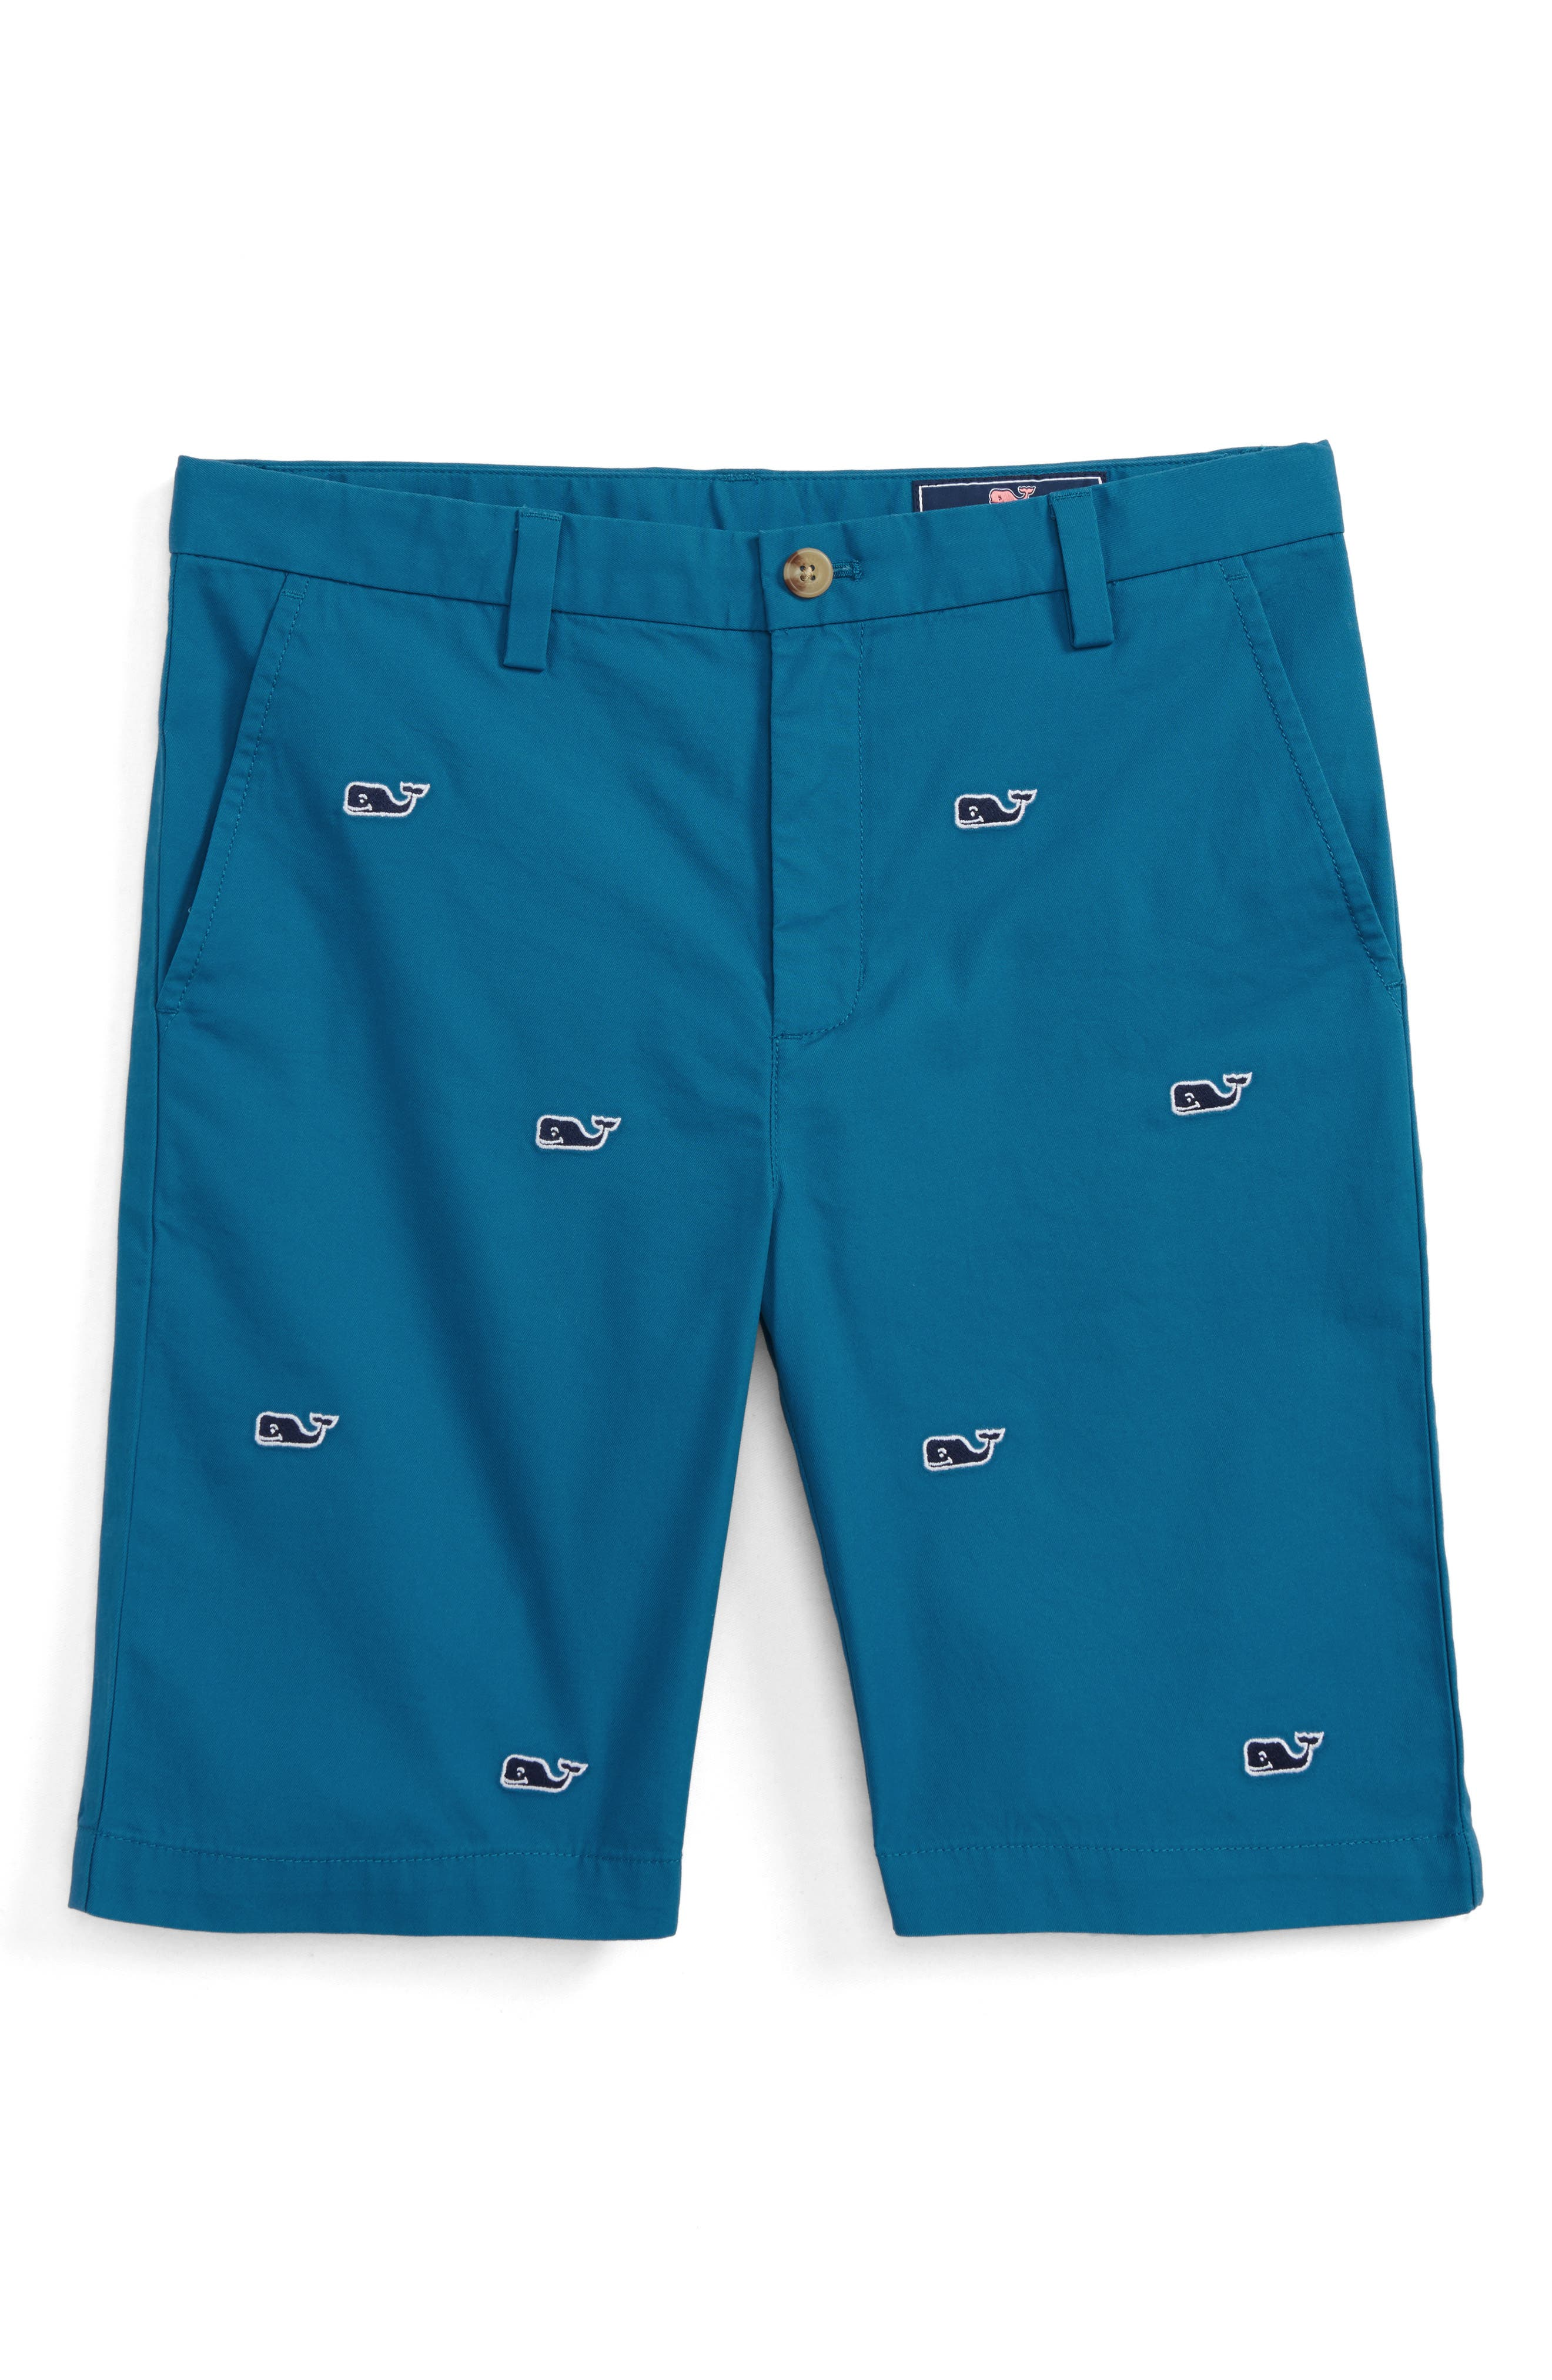 vineyard vines Breaker Whale Embroidered Shorts (Big Boys)